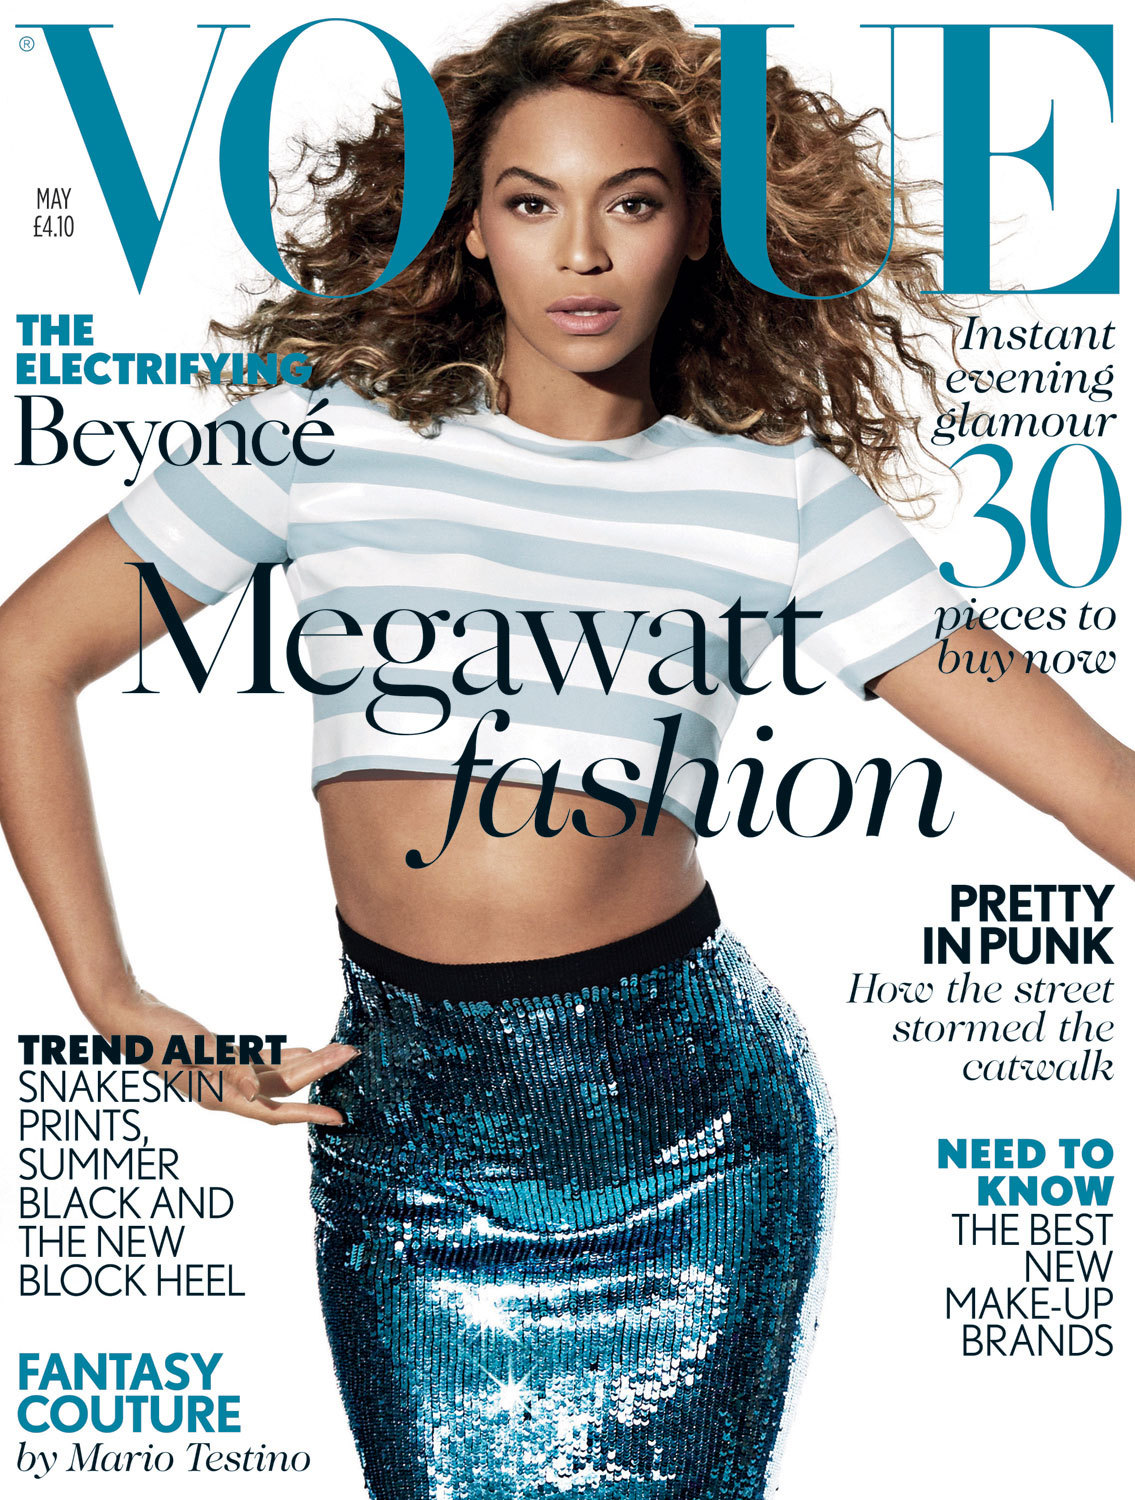 bohemea:  Beyonce - Vogue by Arthur Elgort, May 2013